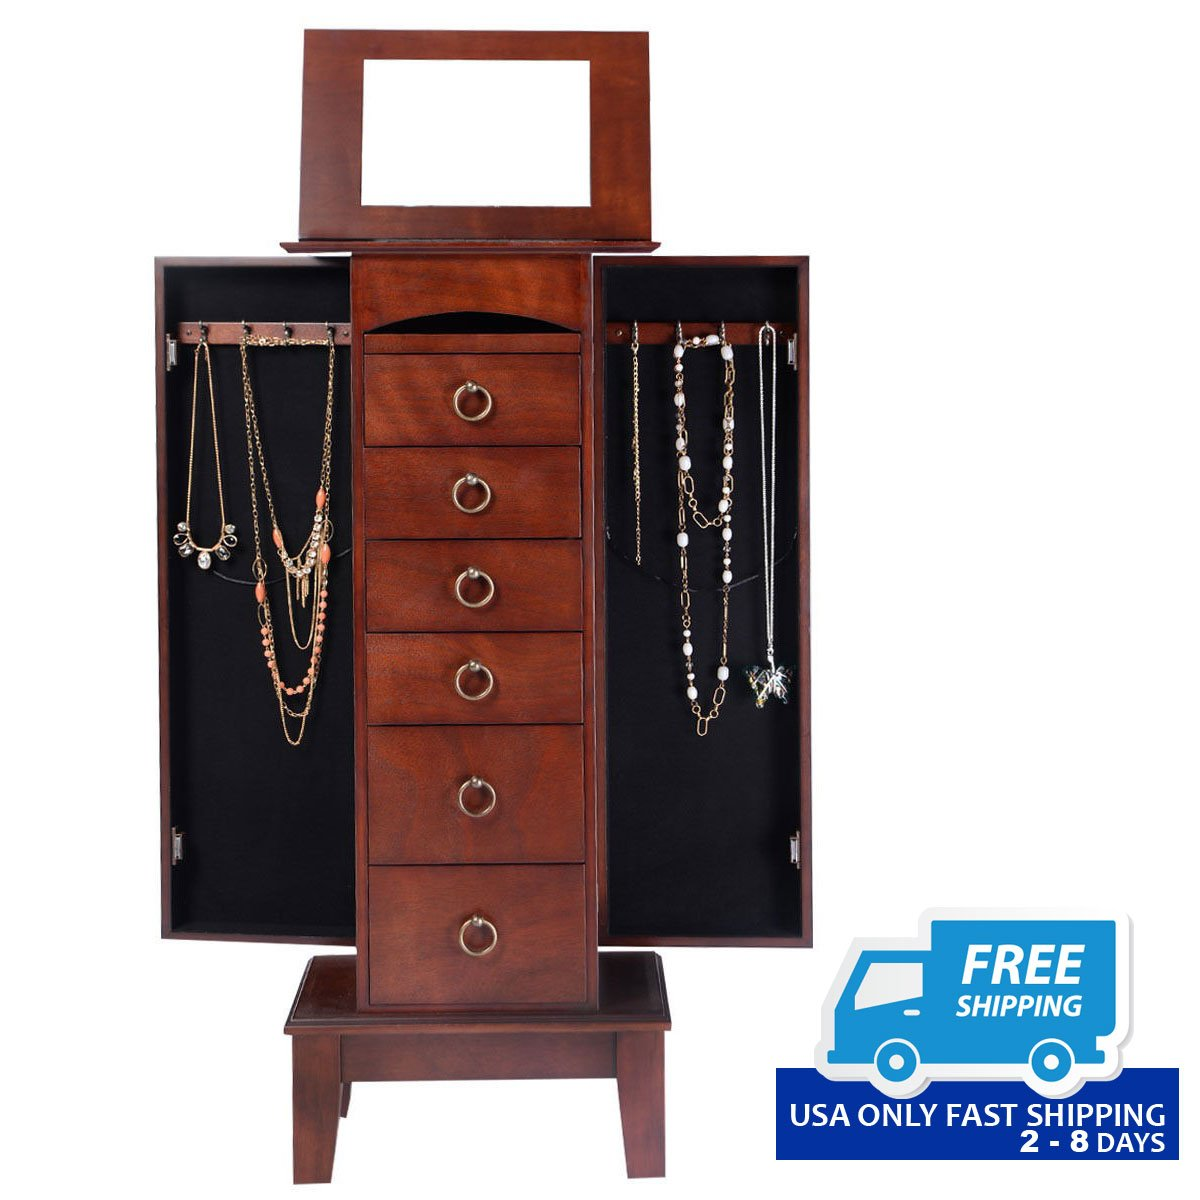 armoire bracelets stand cabinet rings dp dining w jewelry amazon white kitchen com necklaces mirrored mirror